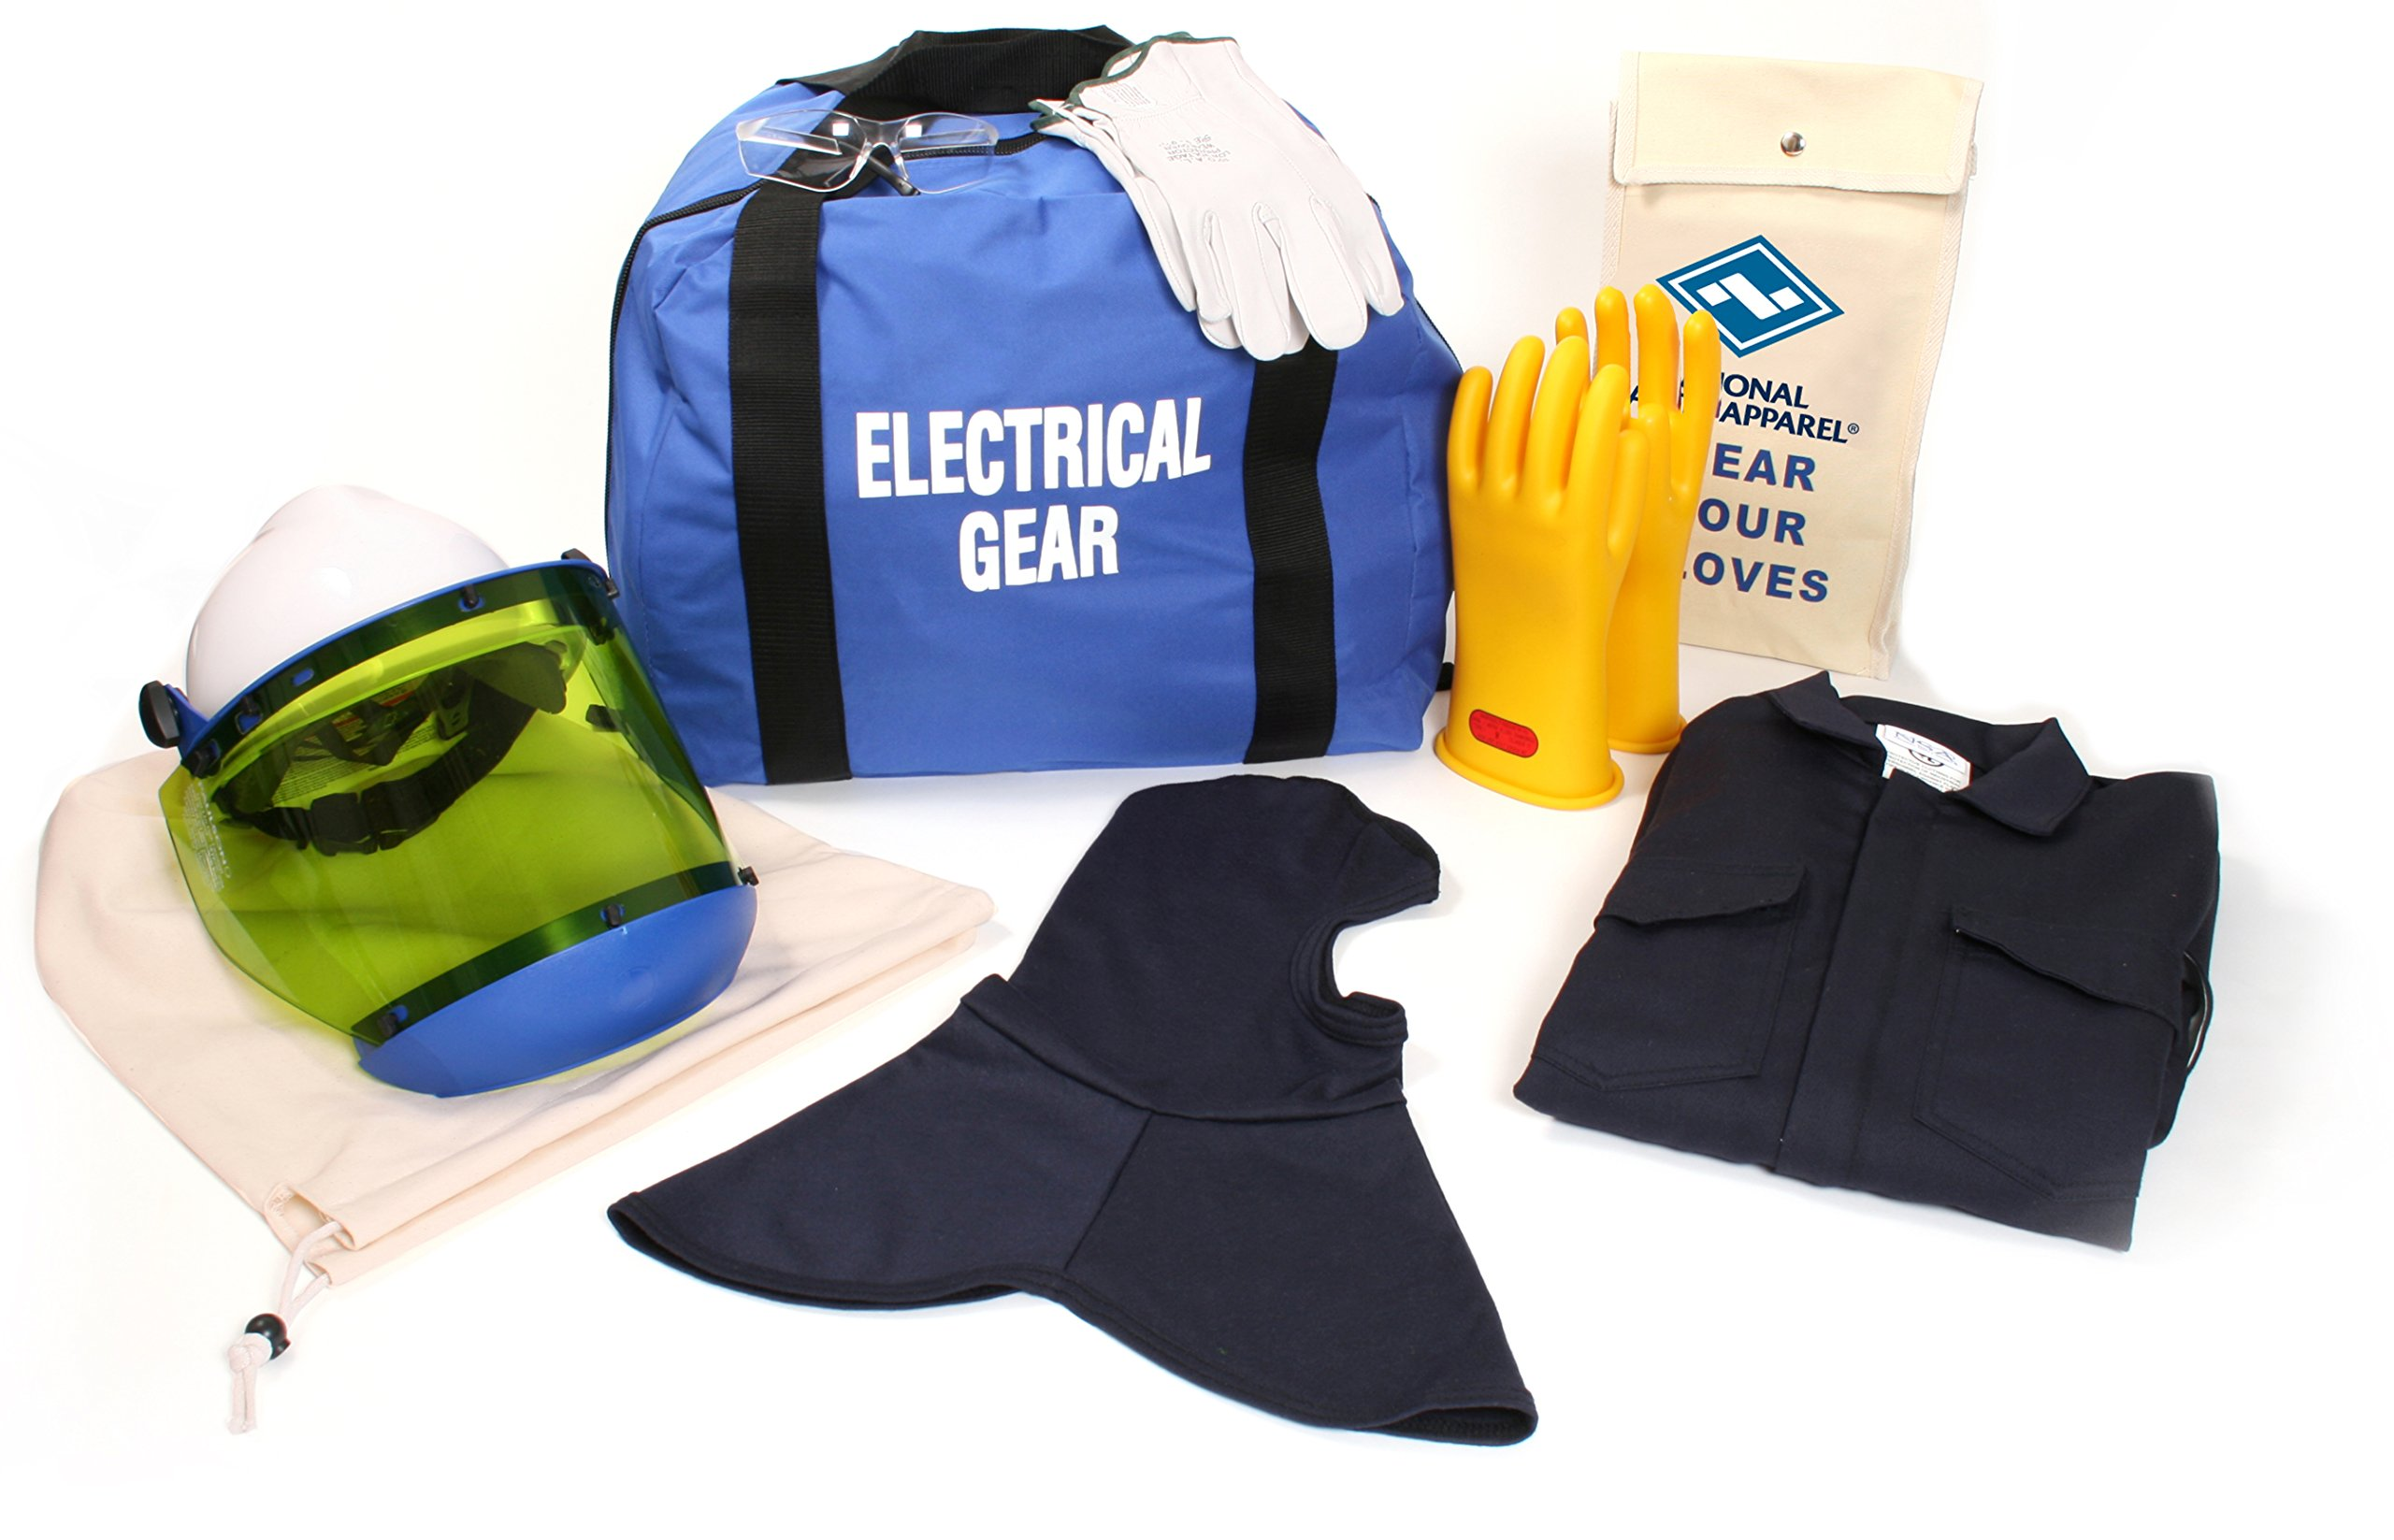 National Safety Apparel KIT2CV08BMD12 ArcGuard UltraSoft Arc Flash Kit with Coverall and Balaclava, 8 Calorie, Medium, Size 12, Navy